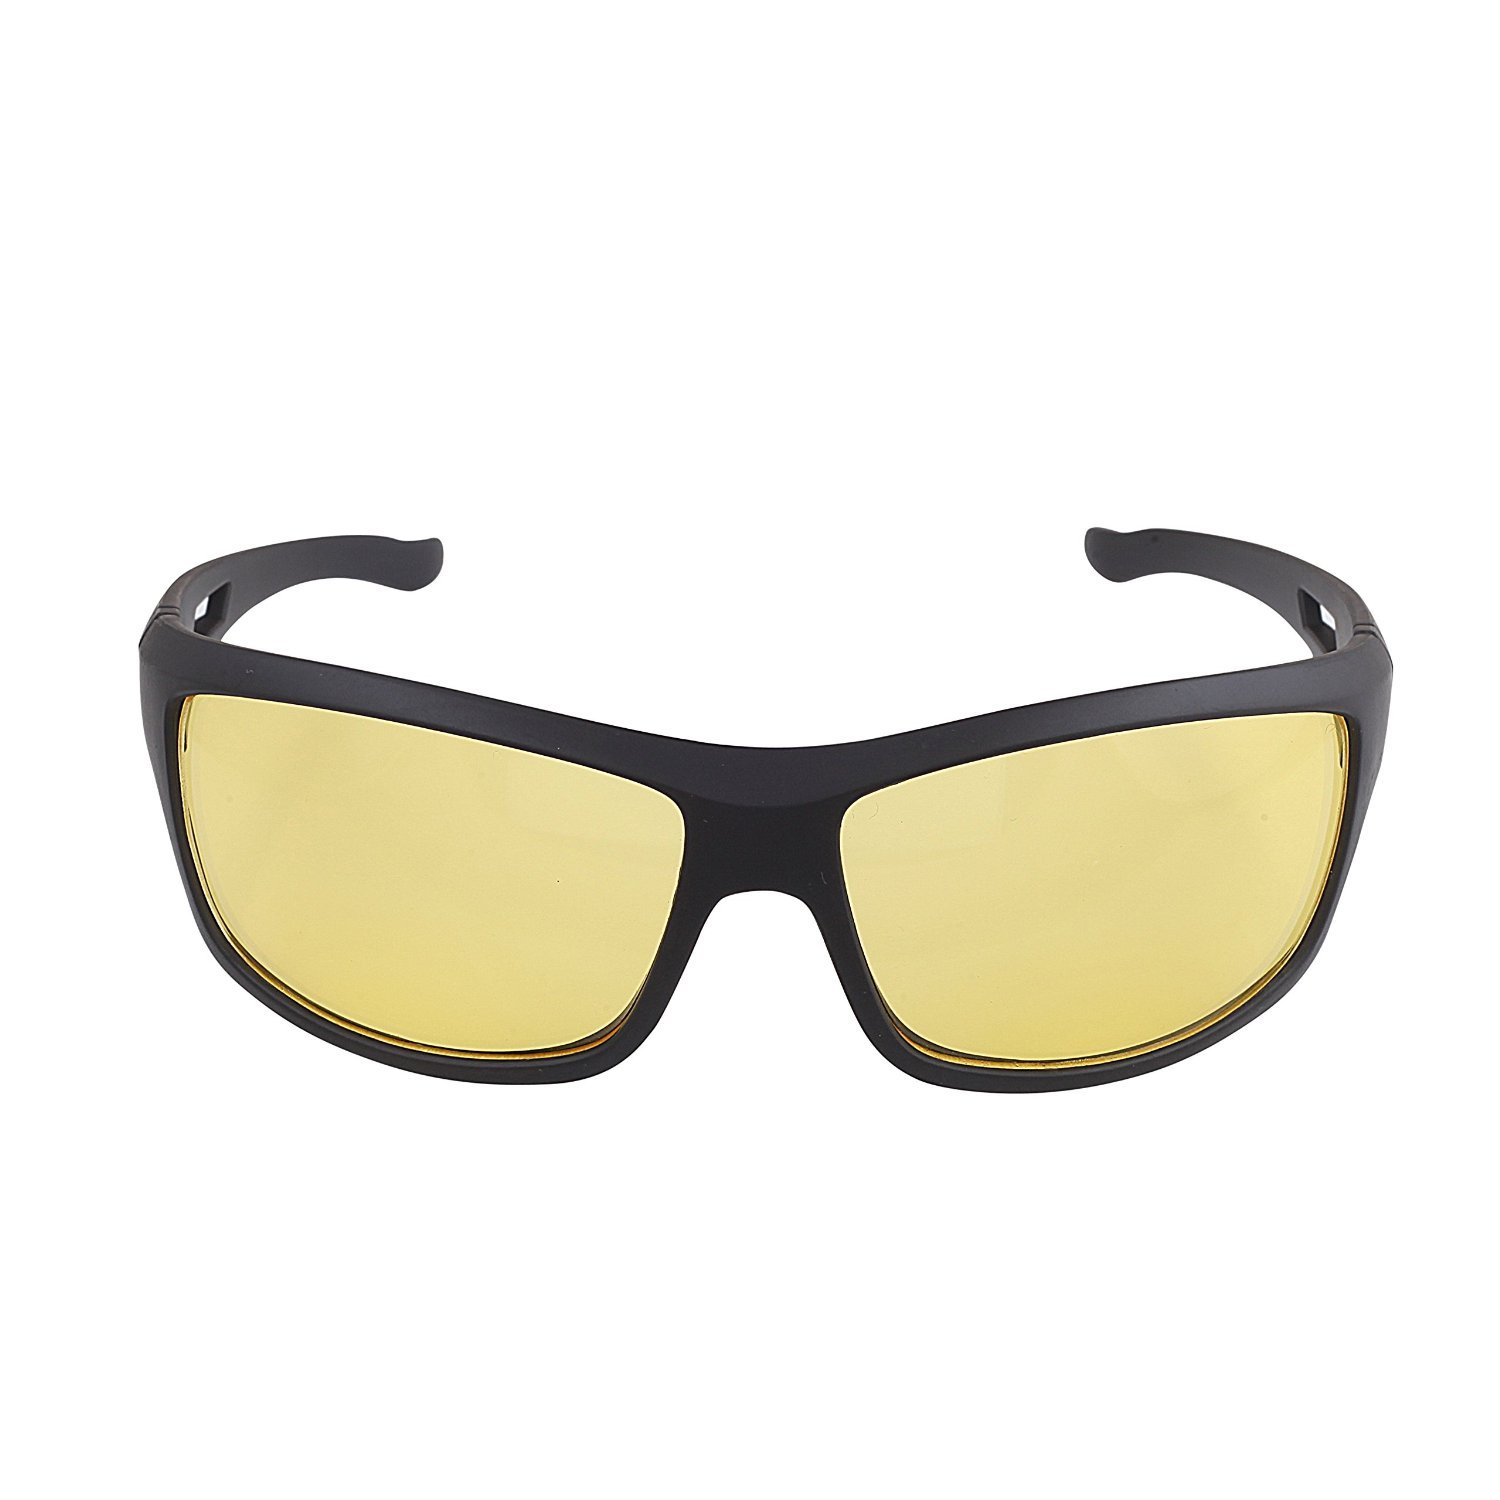 Buy Discount4product Night Vision Goggles with Yellow Lens and Black Frame  at Amazon.in